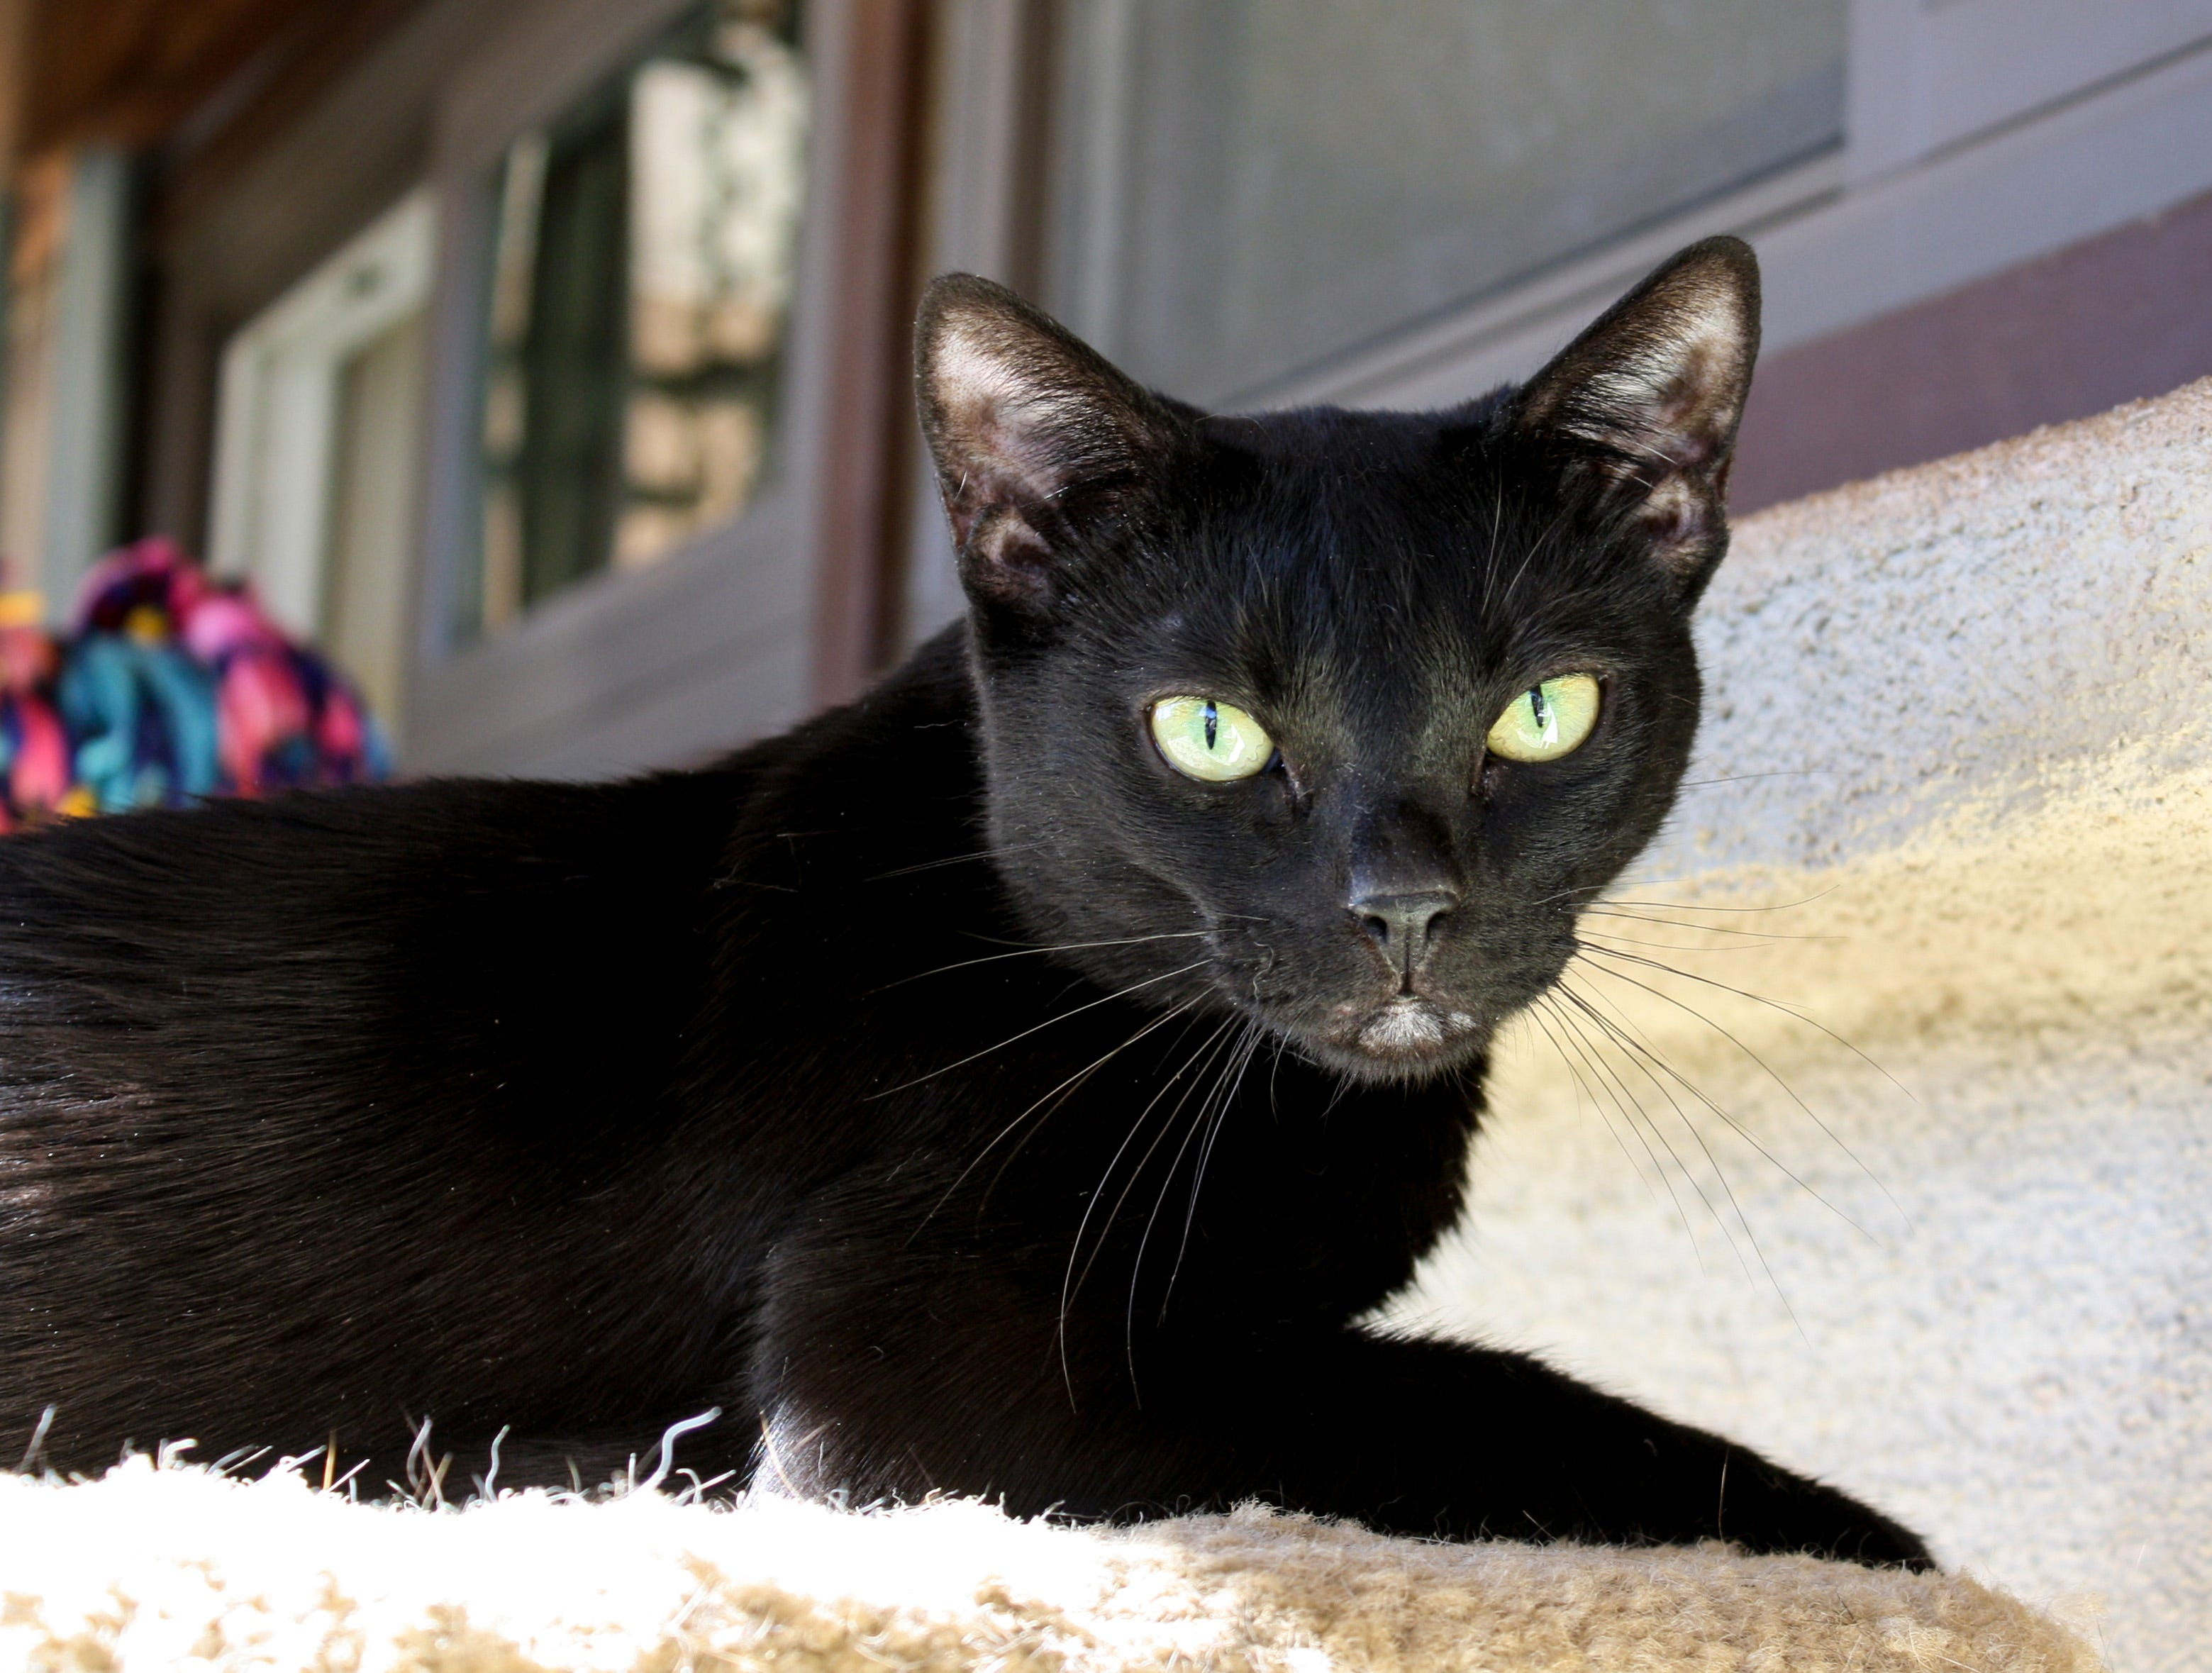 Shadow is a charming adult cat. She lives peacefully in the animal shelter's cat room with no problem. Shadow is spayed and always remembers to use her litter box. Her favorite thing to do is to relax on the cat tree. She would do best in a low- to medium-energy home. You can meet Shadow at the Humane Society of Ventura County in Ojai. Her discounted adoption fee of $75 includes sterilization, vaccinations, microchip implantation, free veterinarian visit, feline leukemia test, ID tag and a loving new family member. For more information on Shadow or other available animals or to volunteer, please call 805-646-6505 or visit www.hsvc.org. The shelter is at 402 Bryant St., Ojai. Hours are 10 a.m. to 5 p.m. Monday through Saturday.